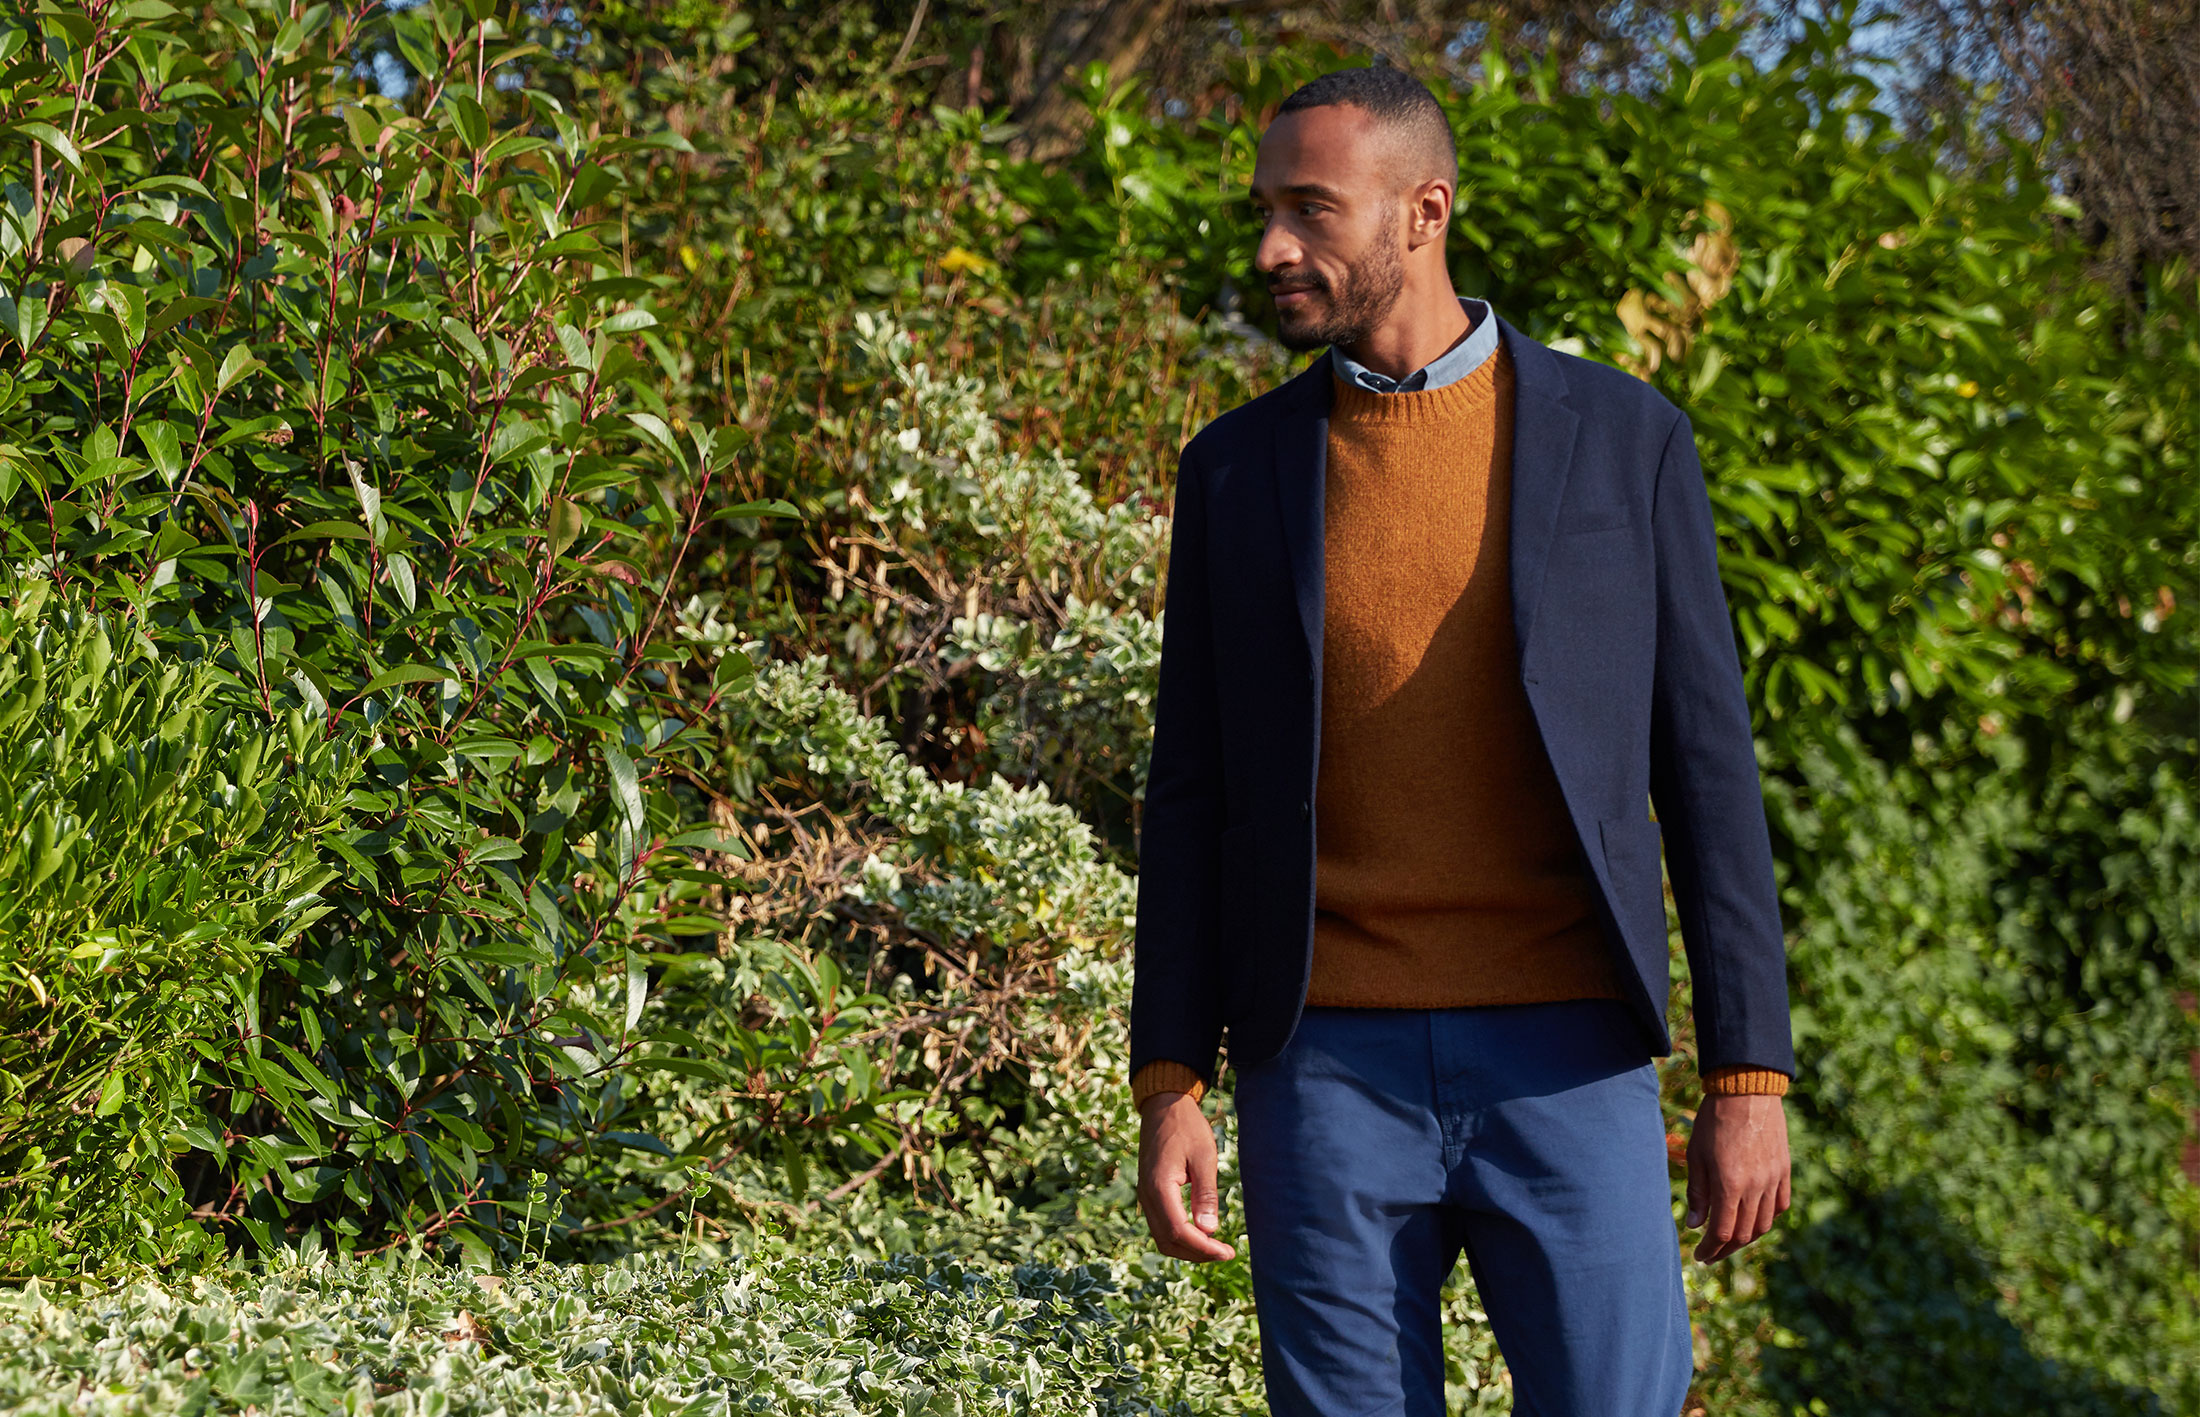 New ways to wear smart-casual